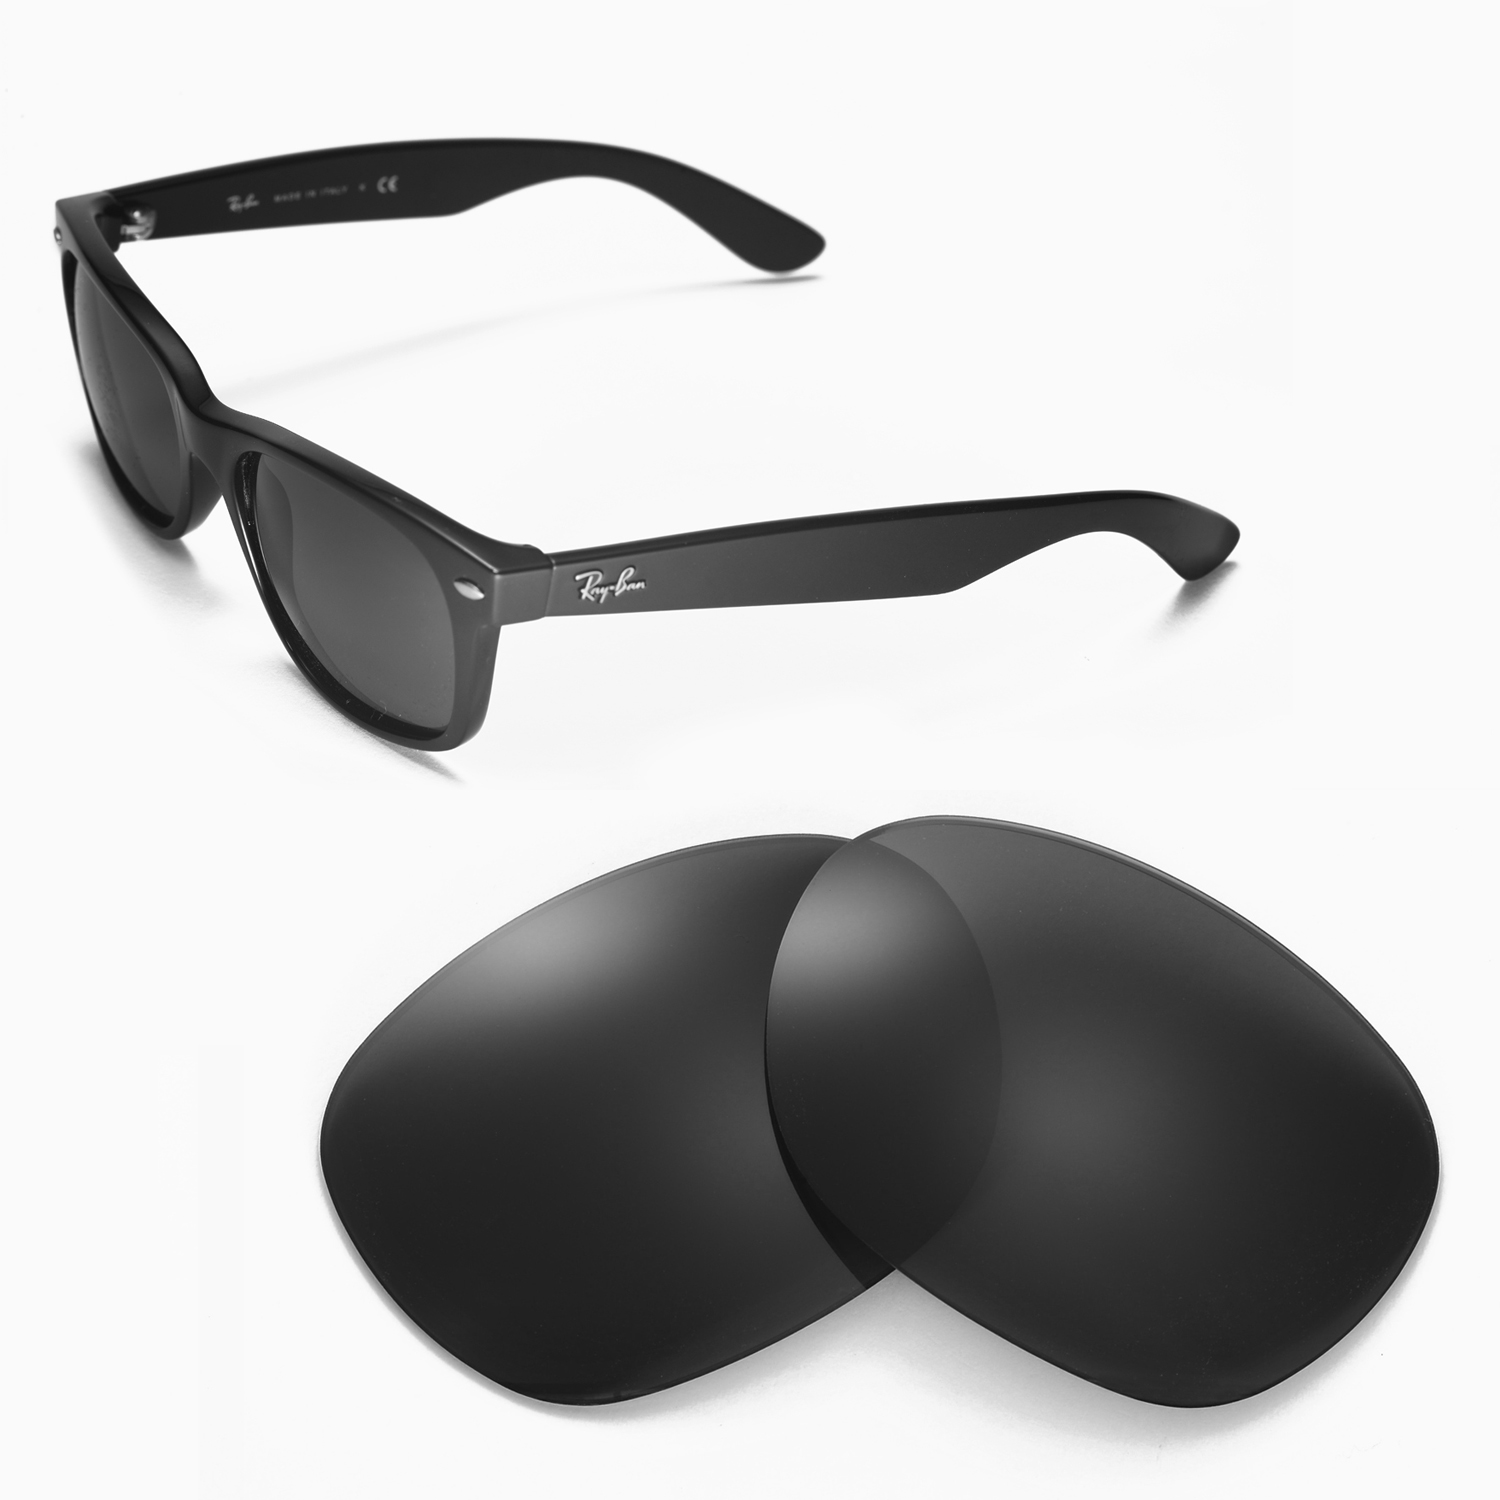 9474212fe6 Details about WL Polarized Black Replacement Lenses For Ray-Ban Wayfarer  2132 55mm